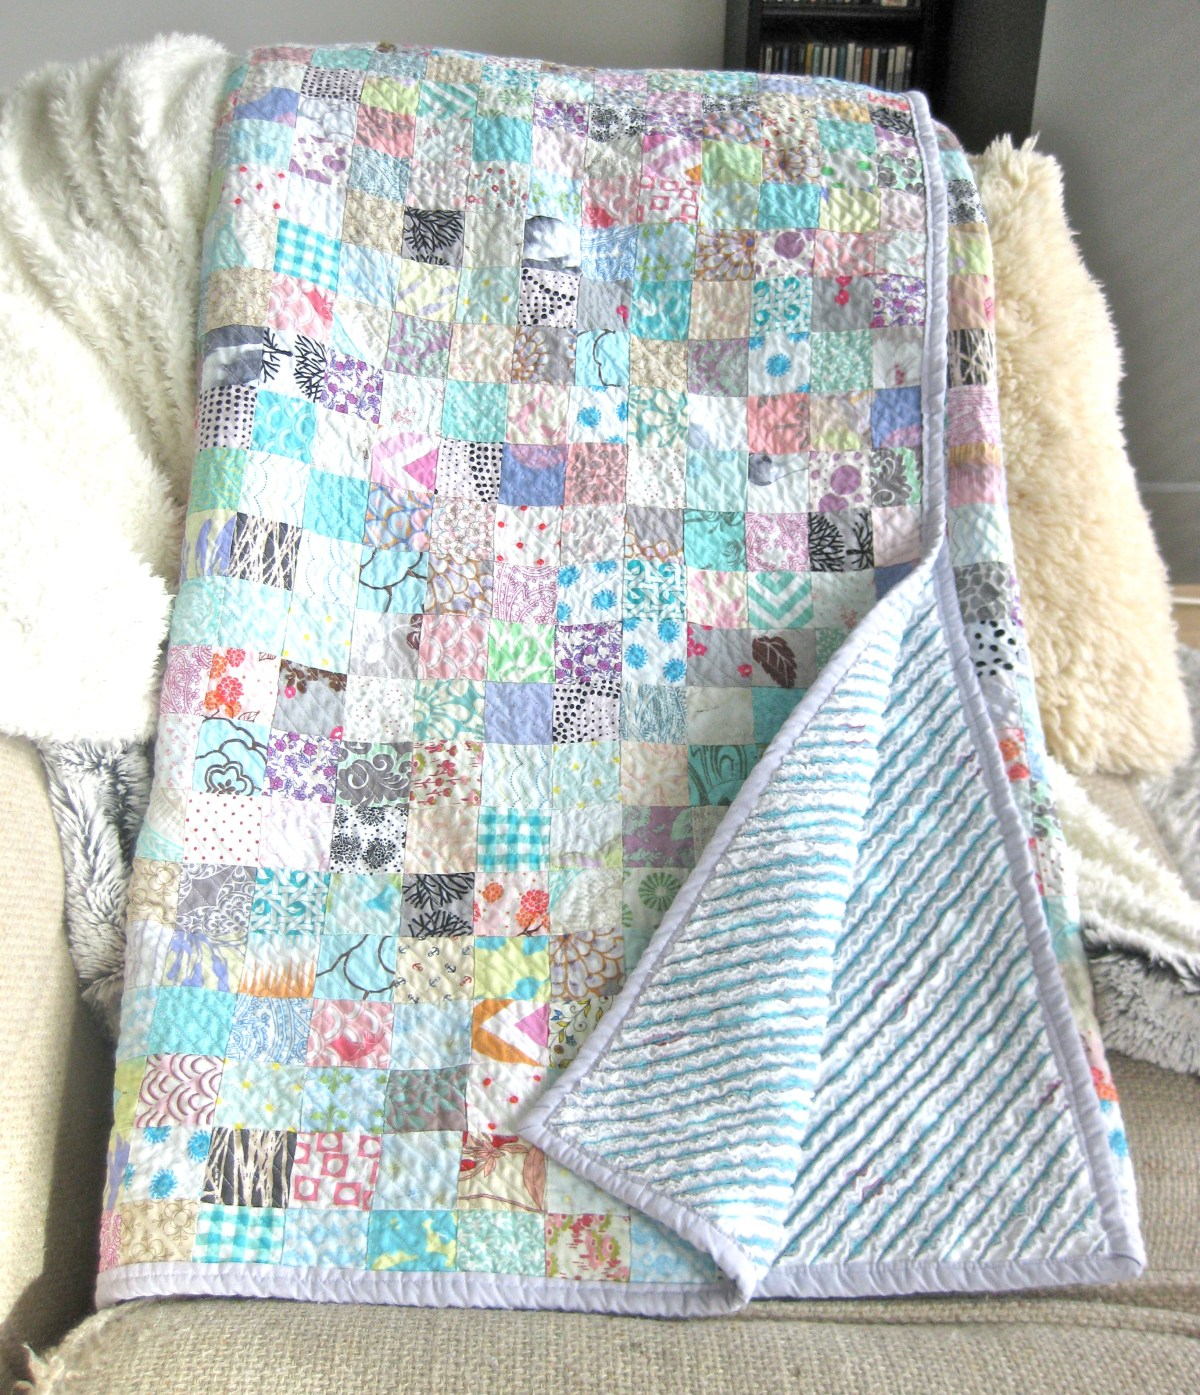 DIY Queen sized chenille quilt - beautifuly compleated